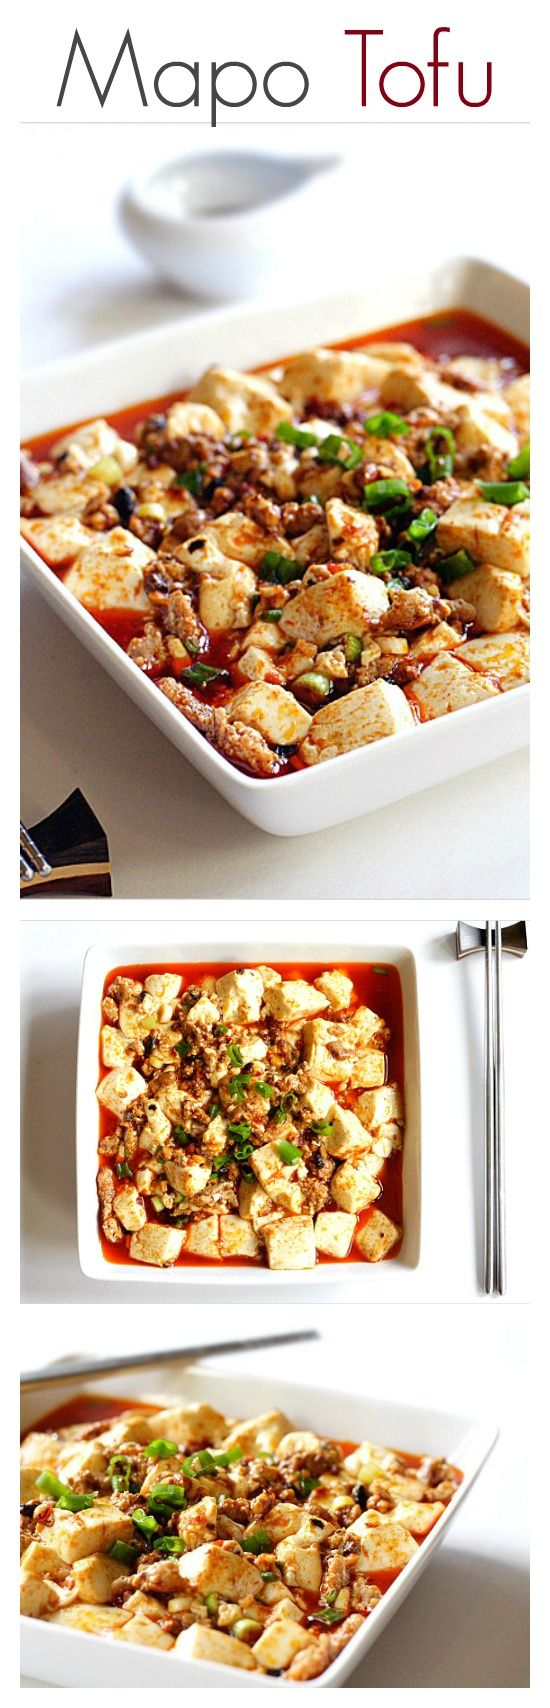 {China} Mapo Tofu - the best Chinese tofu dish. Learn how to make it with this super easy and delicious recipe | rasamalaysia.com